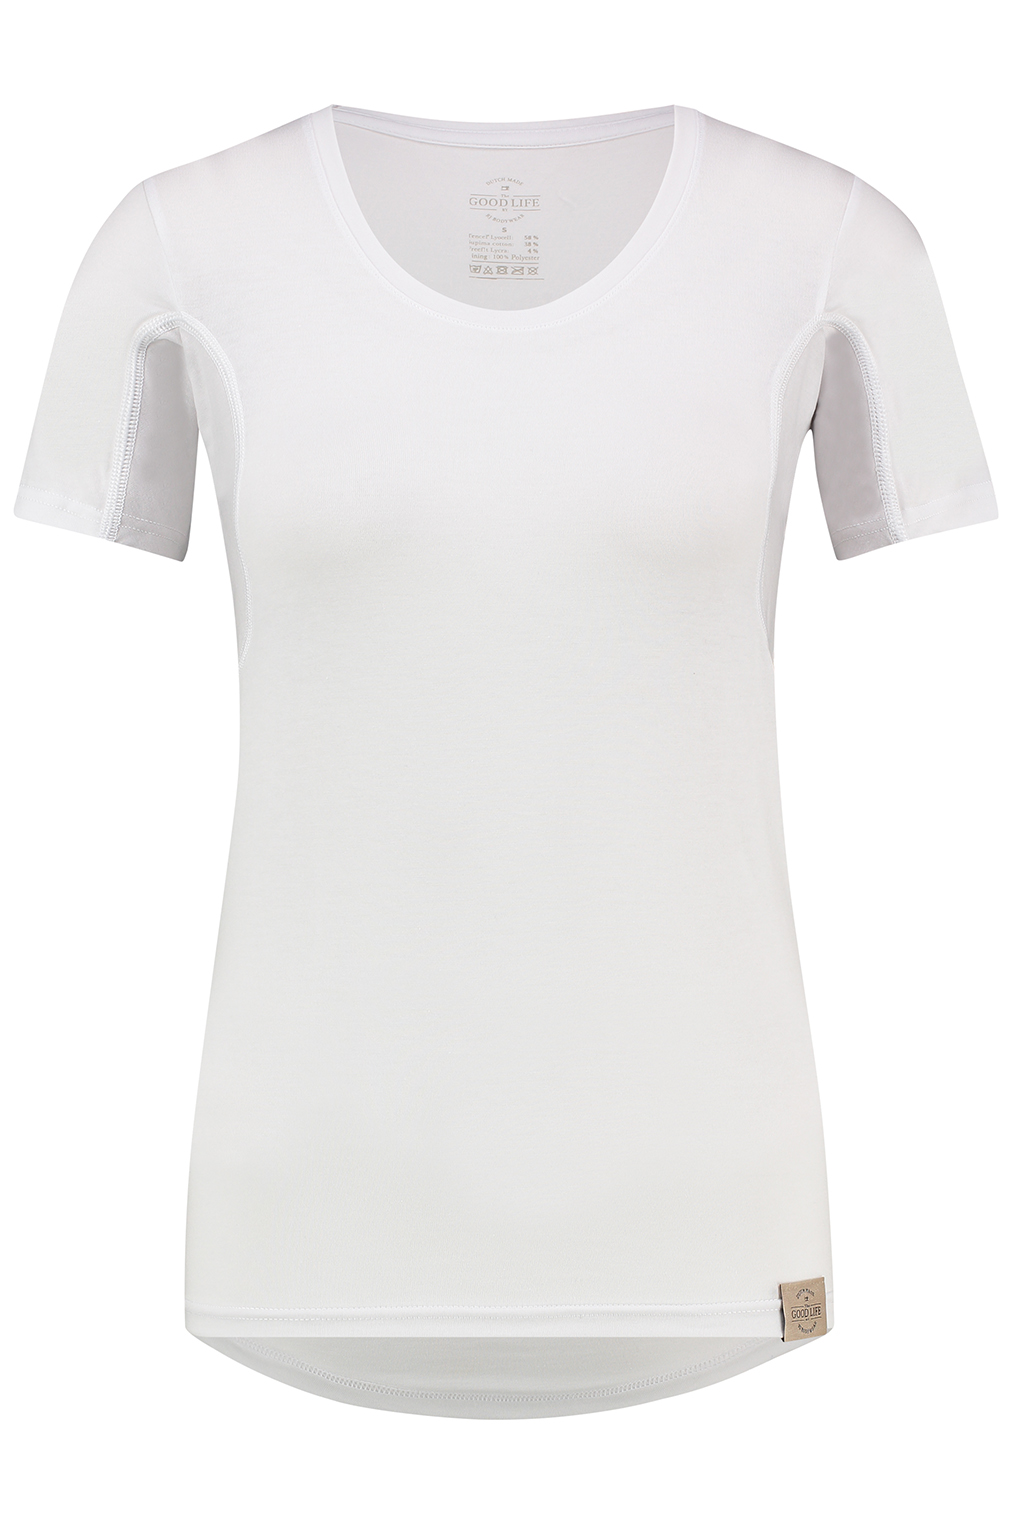 RJ Sweatproof Bern T-Shirt O-Neck